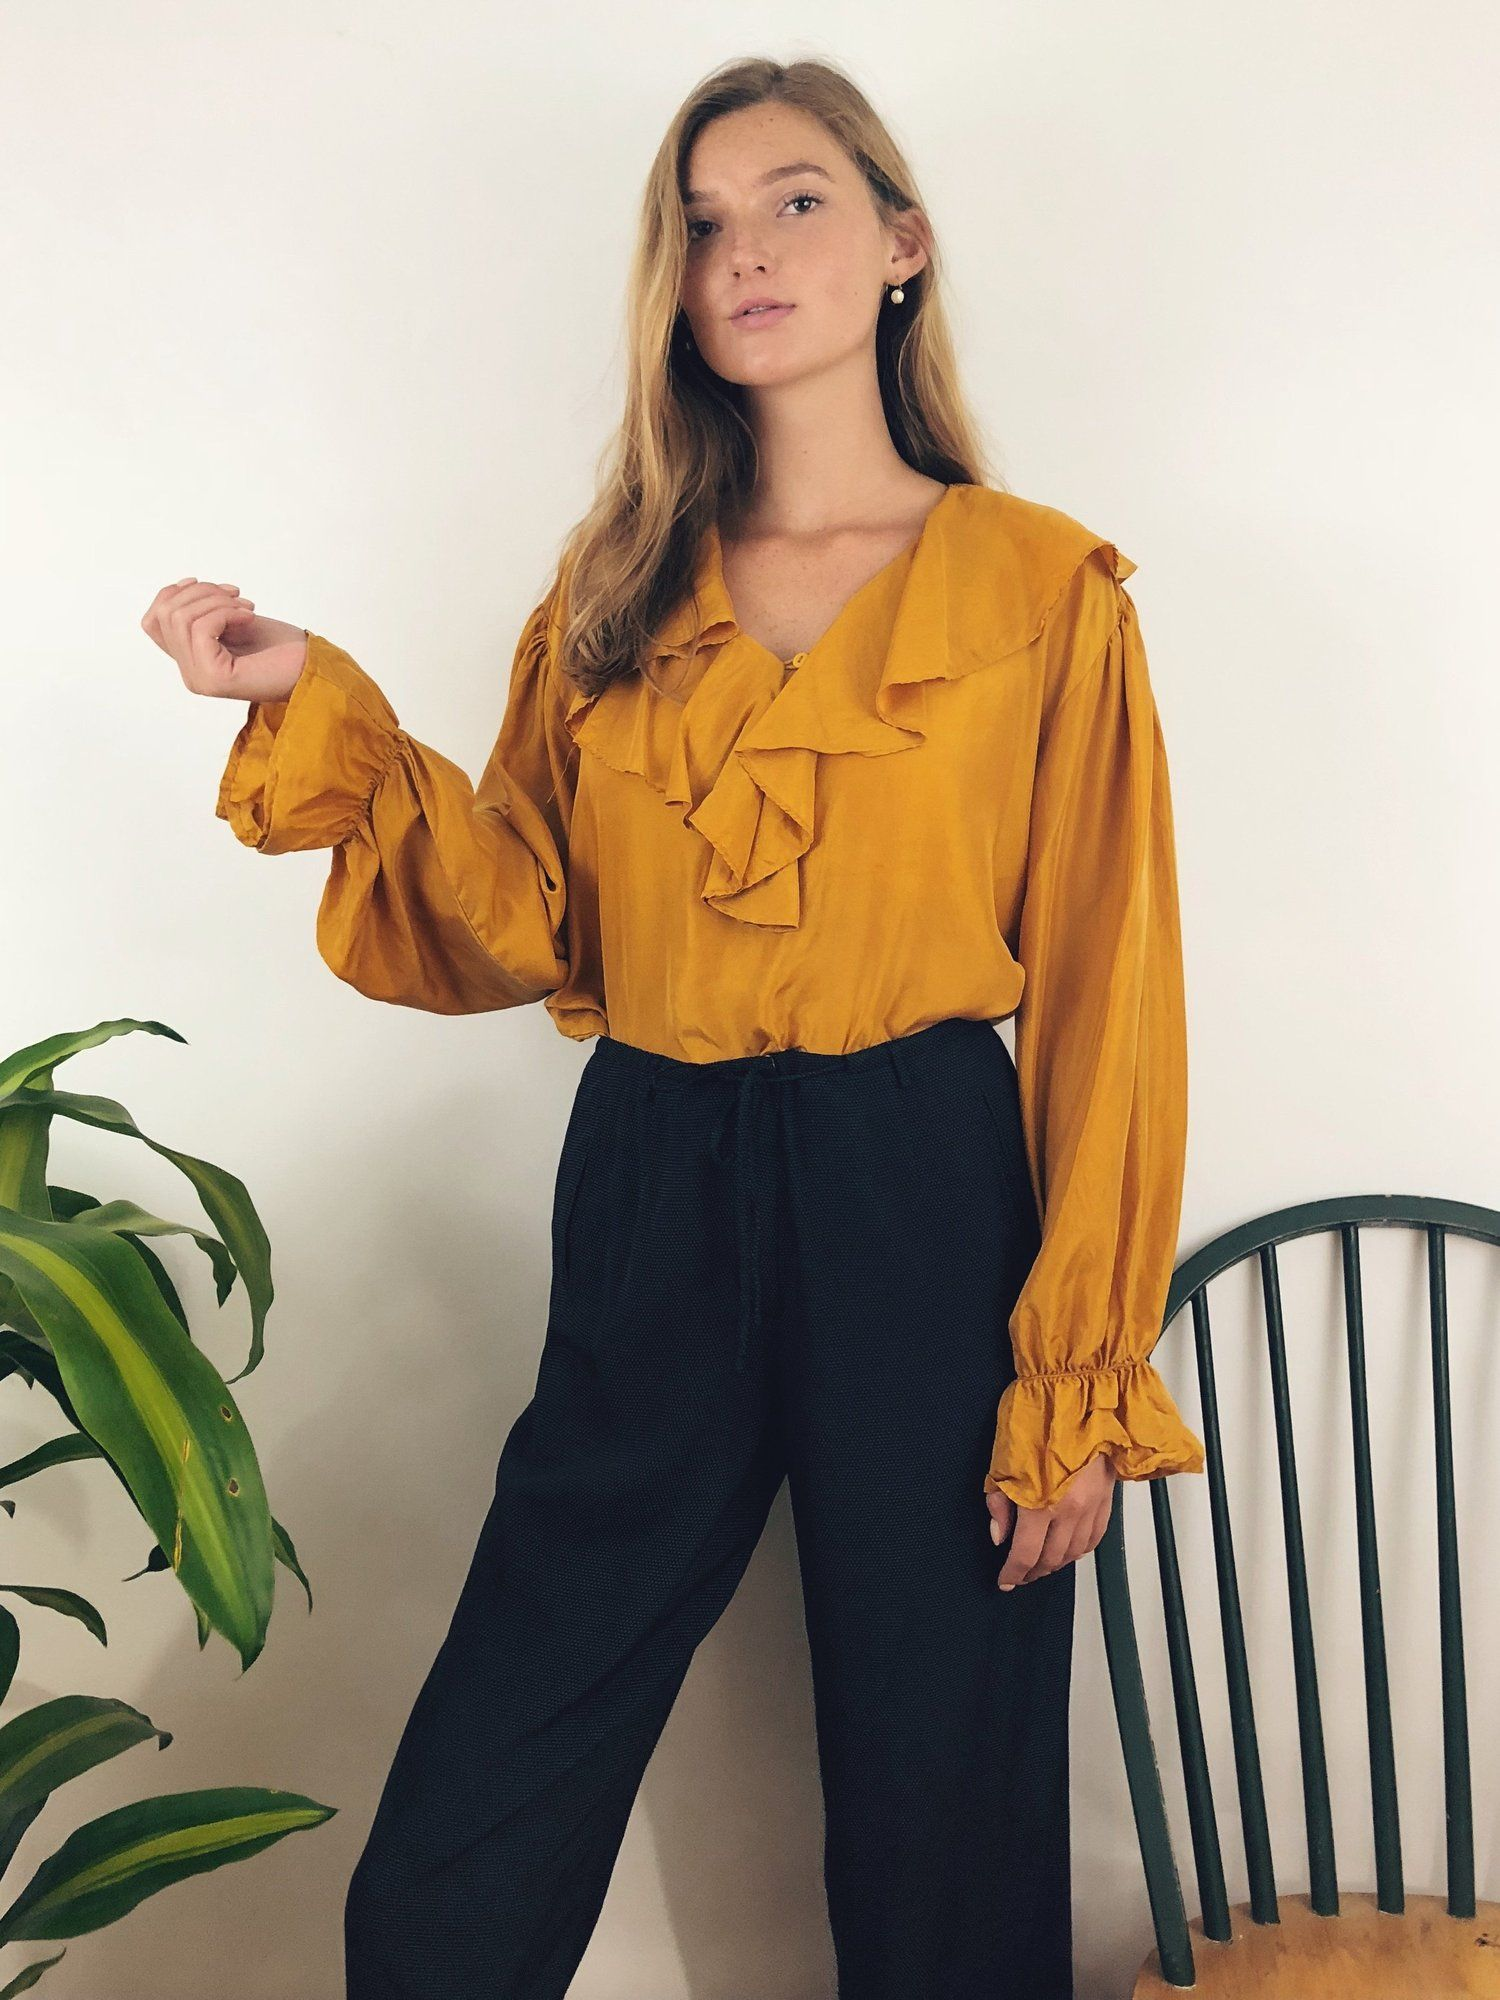 ba06c67d037 awesome 117 Vintage Summer Outfit Ideas to Looks Classic https    attirepin.com